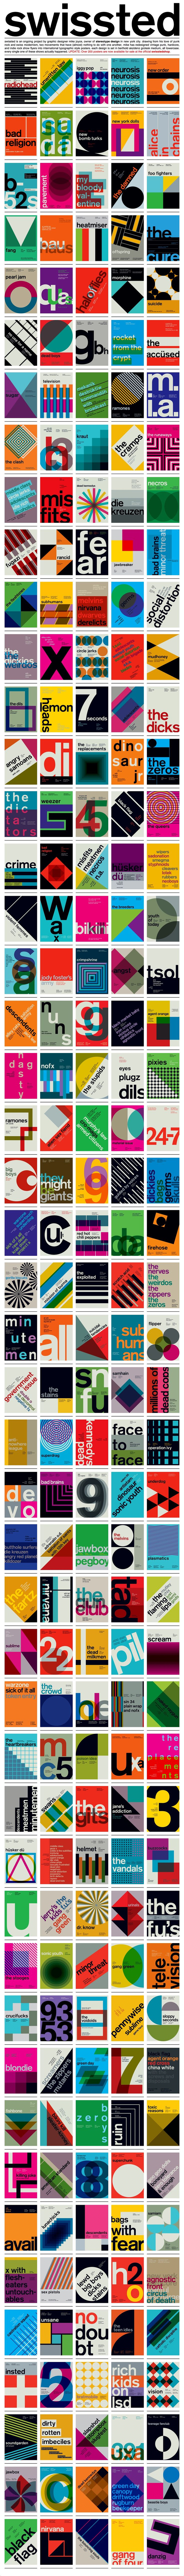 swissted is an ongoing project by graphic designer mike joyce. drawing from his…